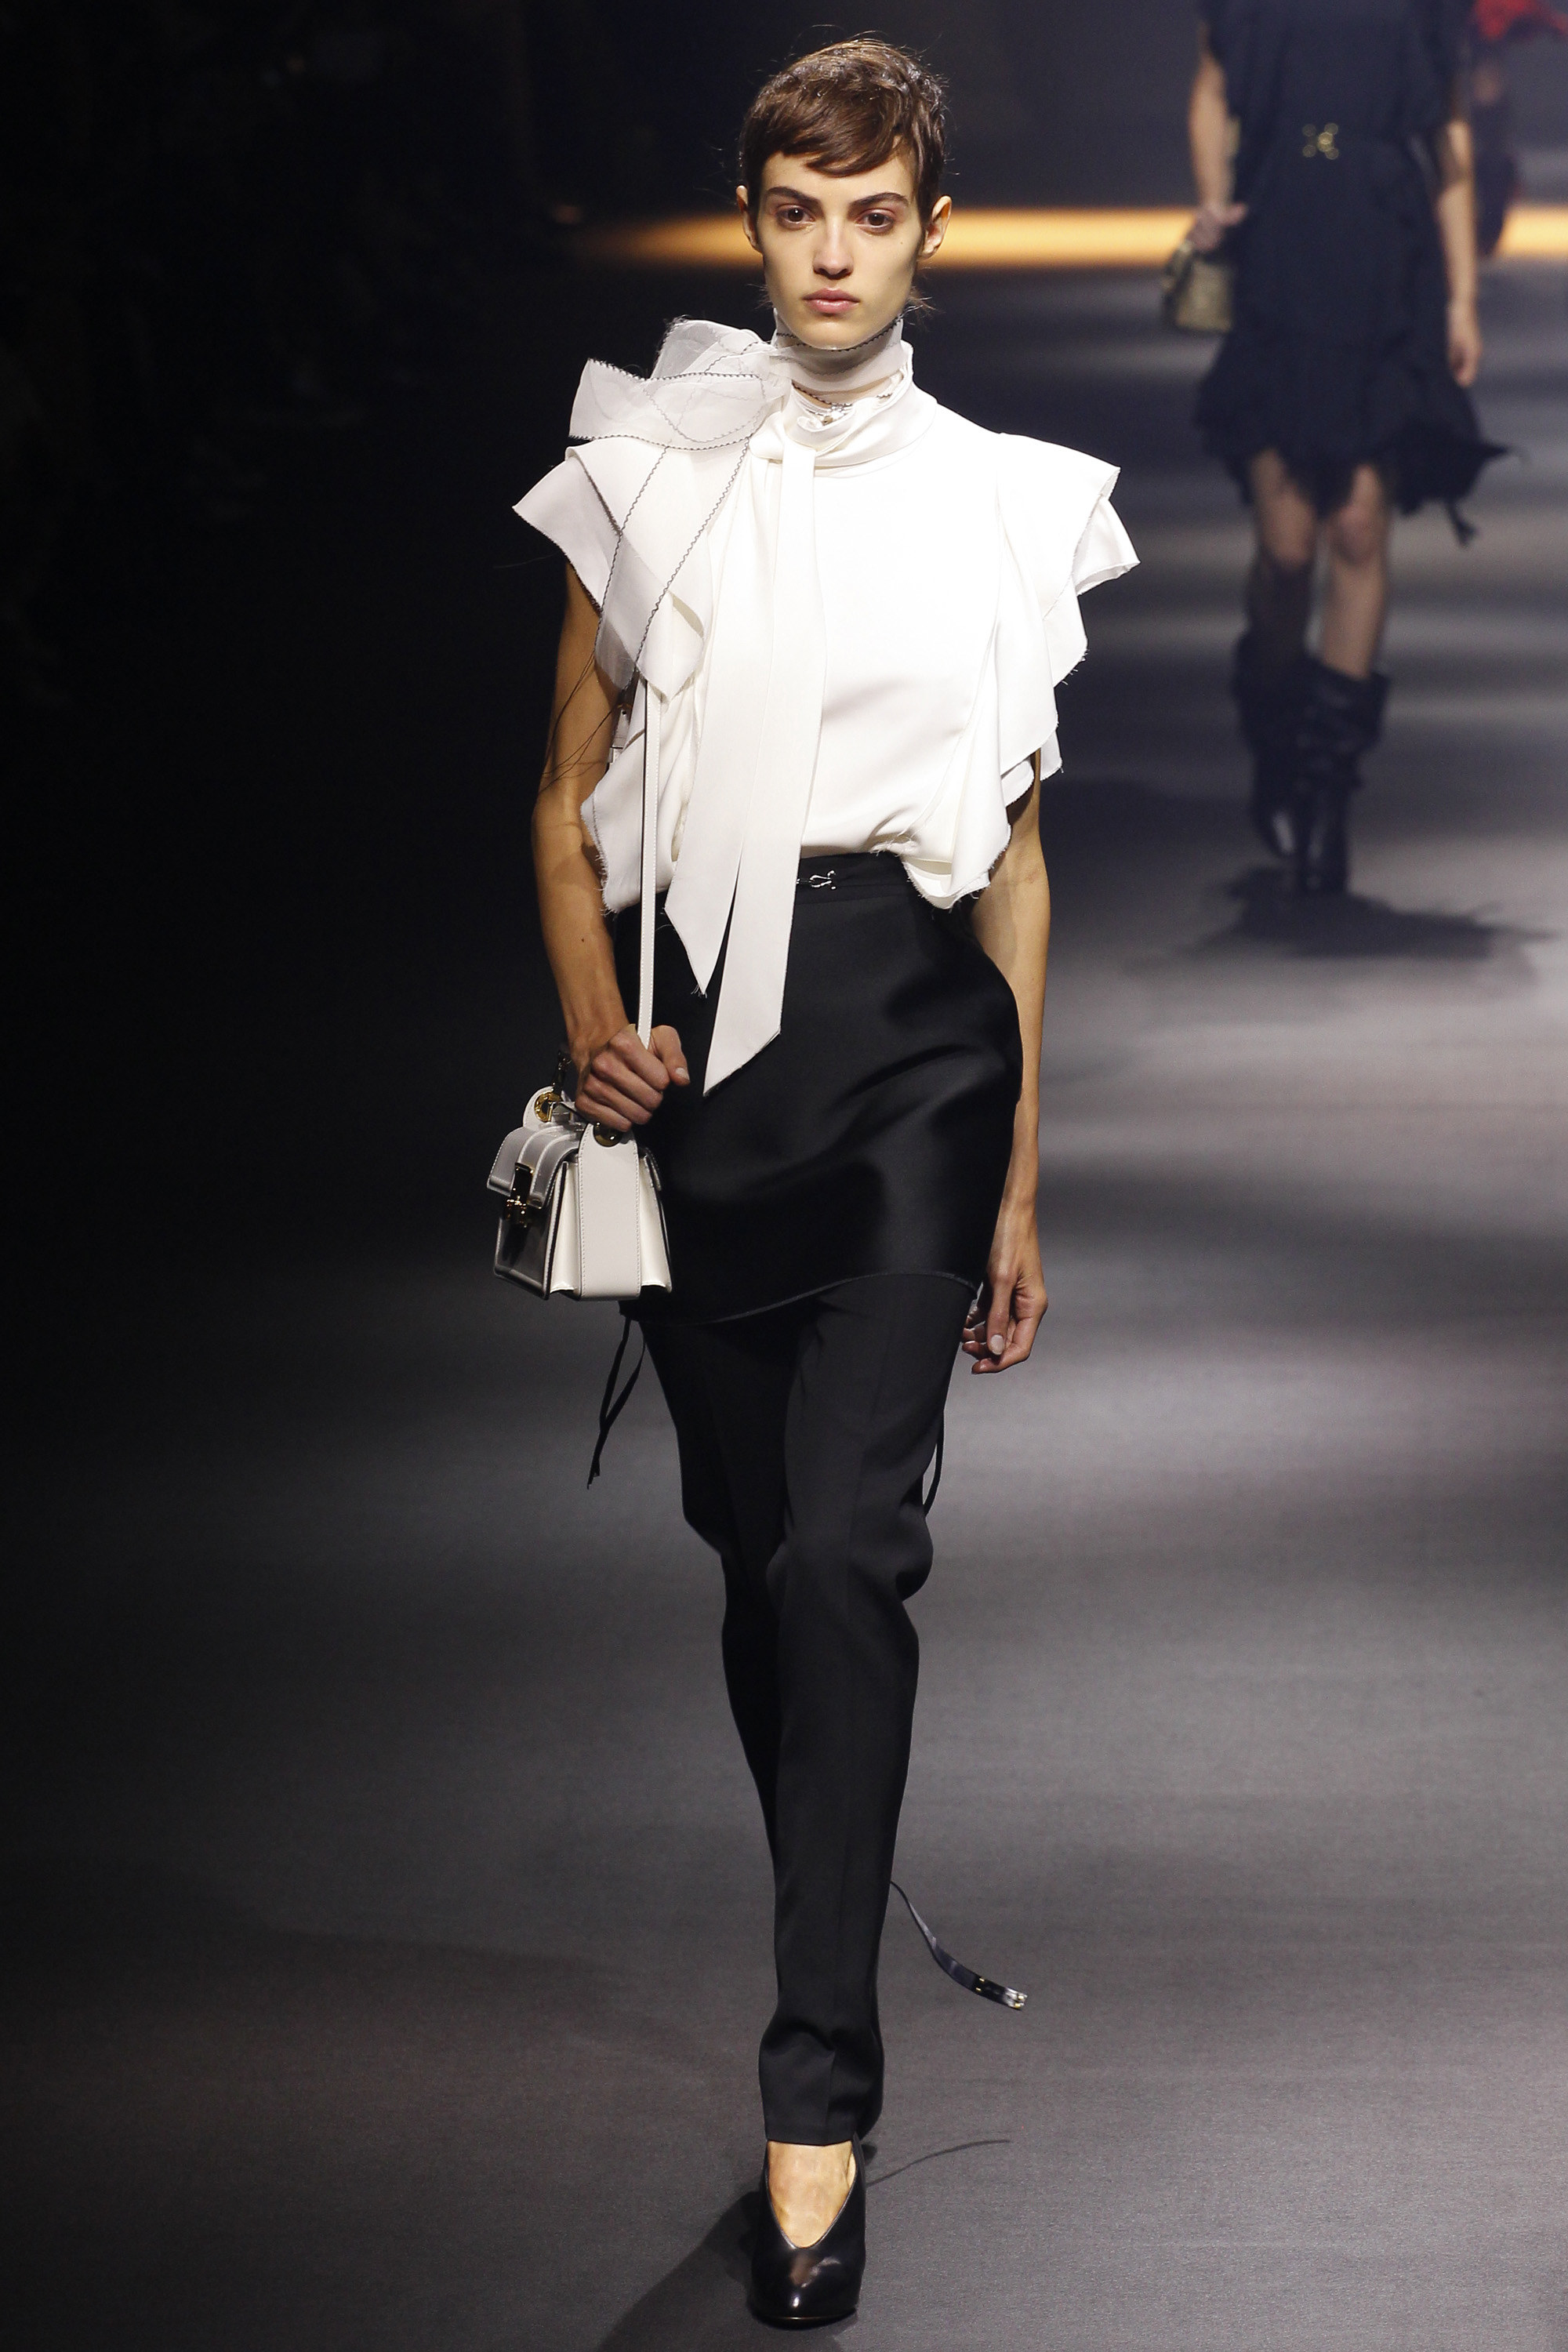 2016 Top 10 Smb Business Issues It Priorities It: Top 12 Looks From Lanvin Spring 2016 Ready To Wear